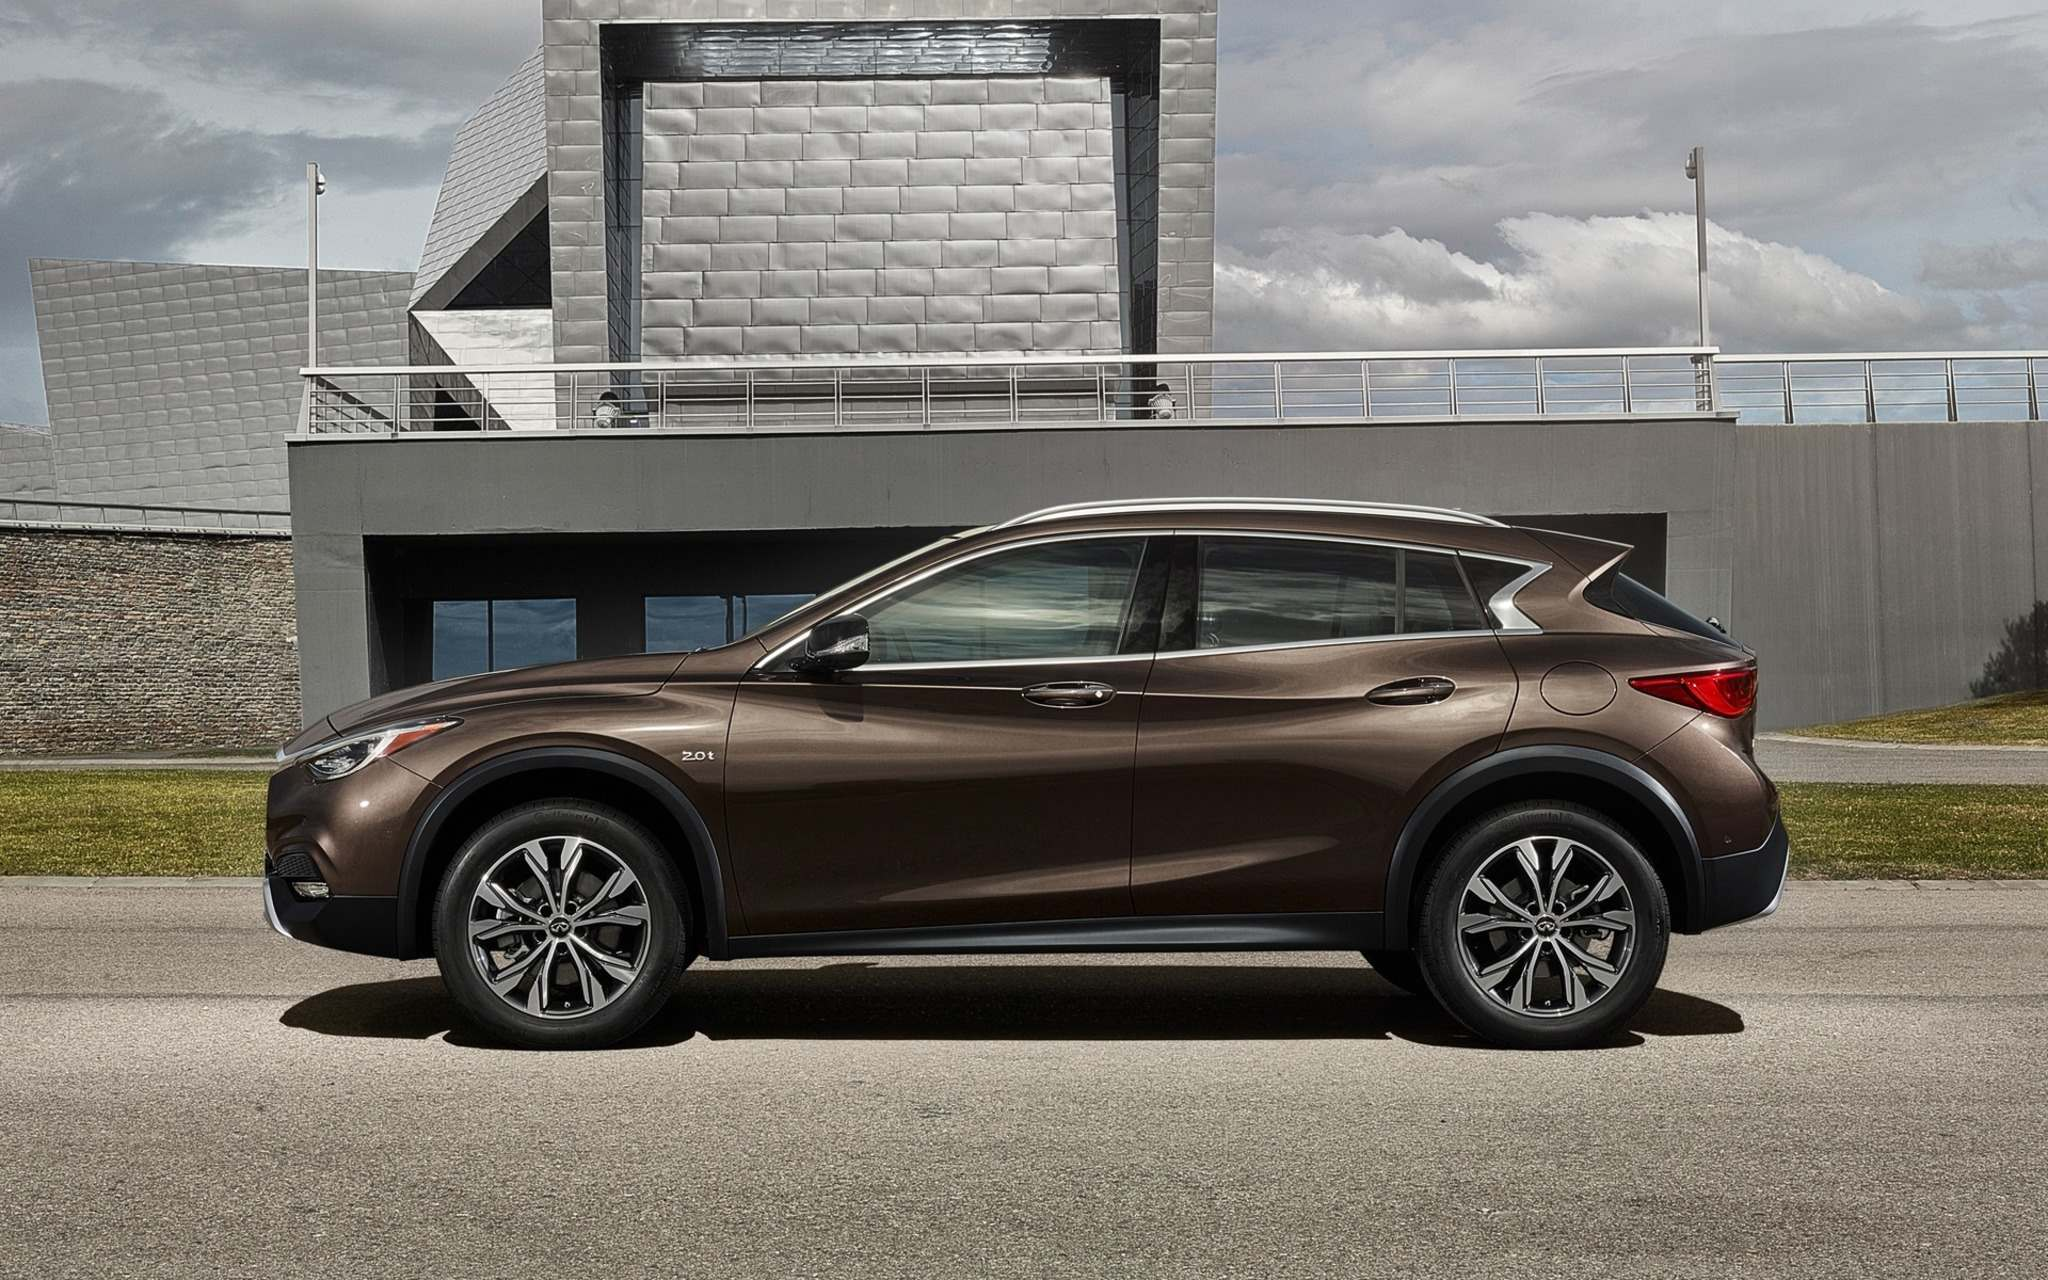 INFINITIThe new QX30 has arrived on showroom floors in Manitoba. It is Infiniti Canada's first crossover SUV and is powered by a 2.0-litre turbocharged four-cylinder engine that puts out 208 horsepower and 258 pound-feet of torque.